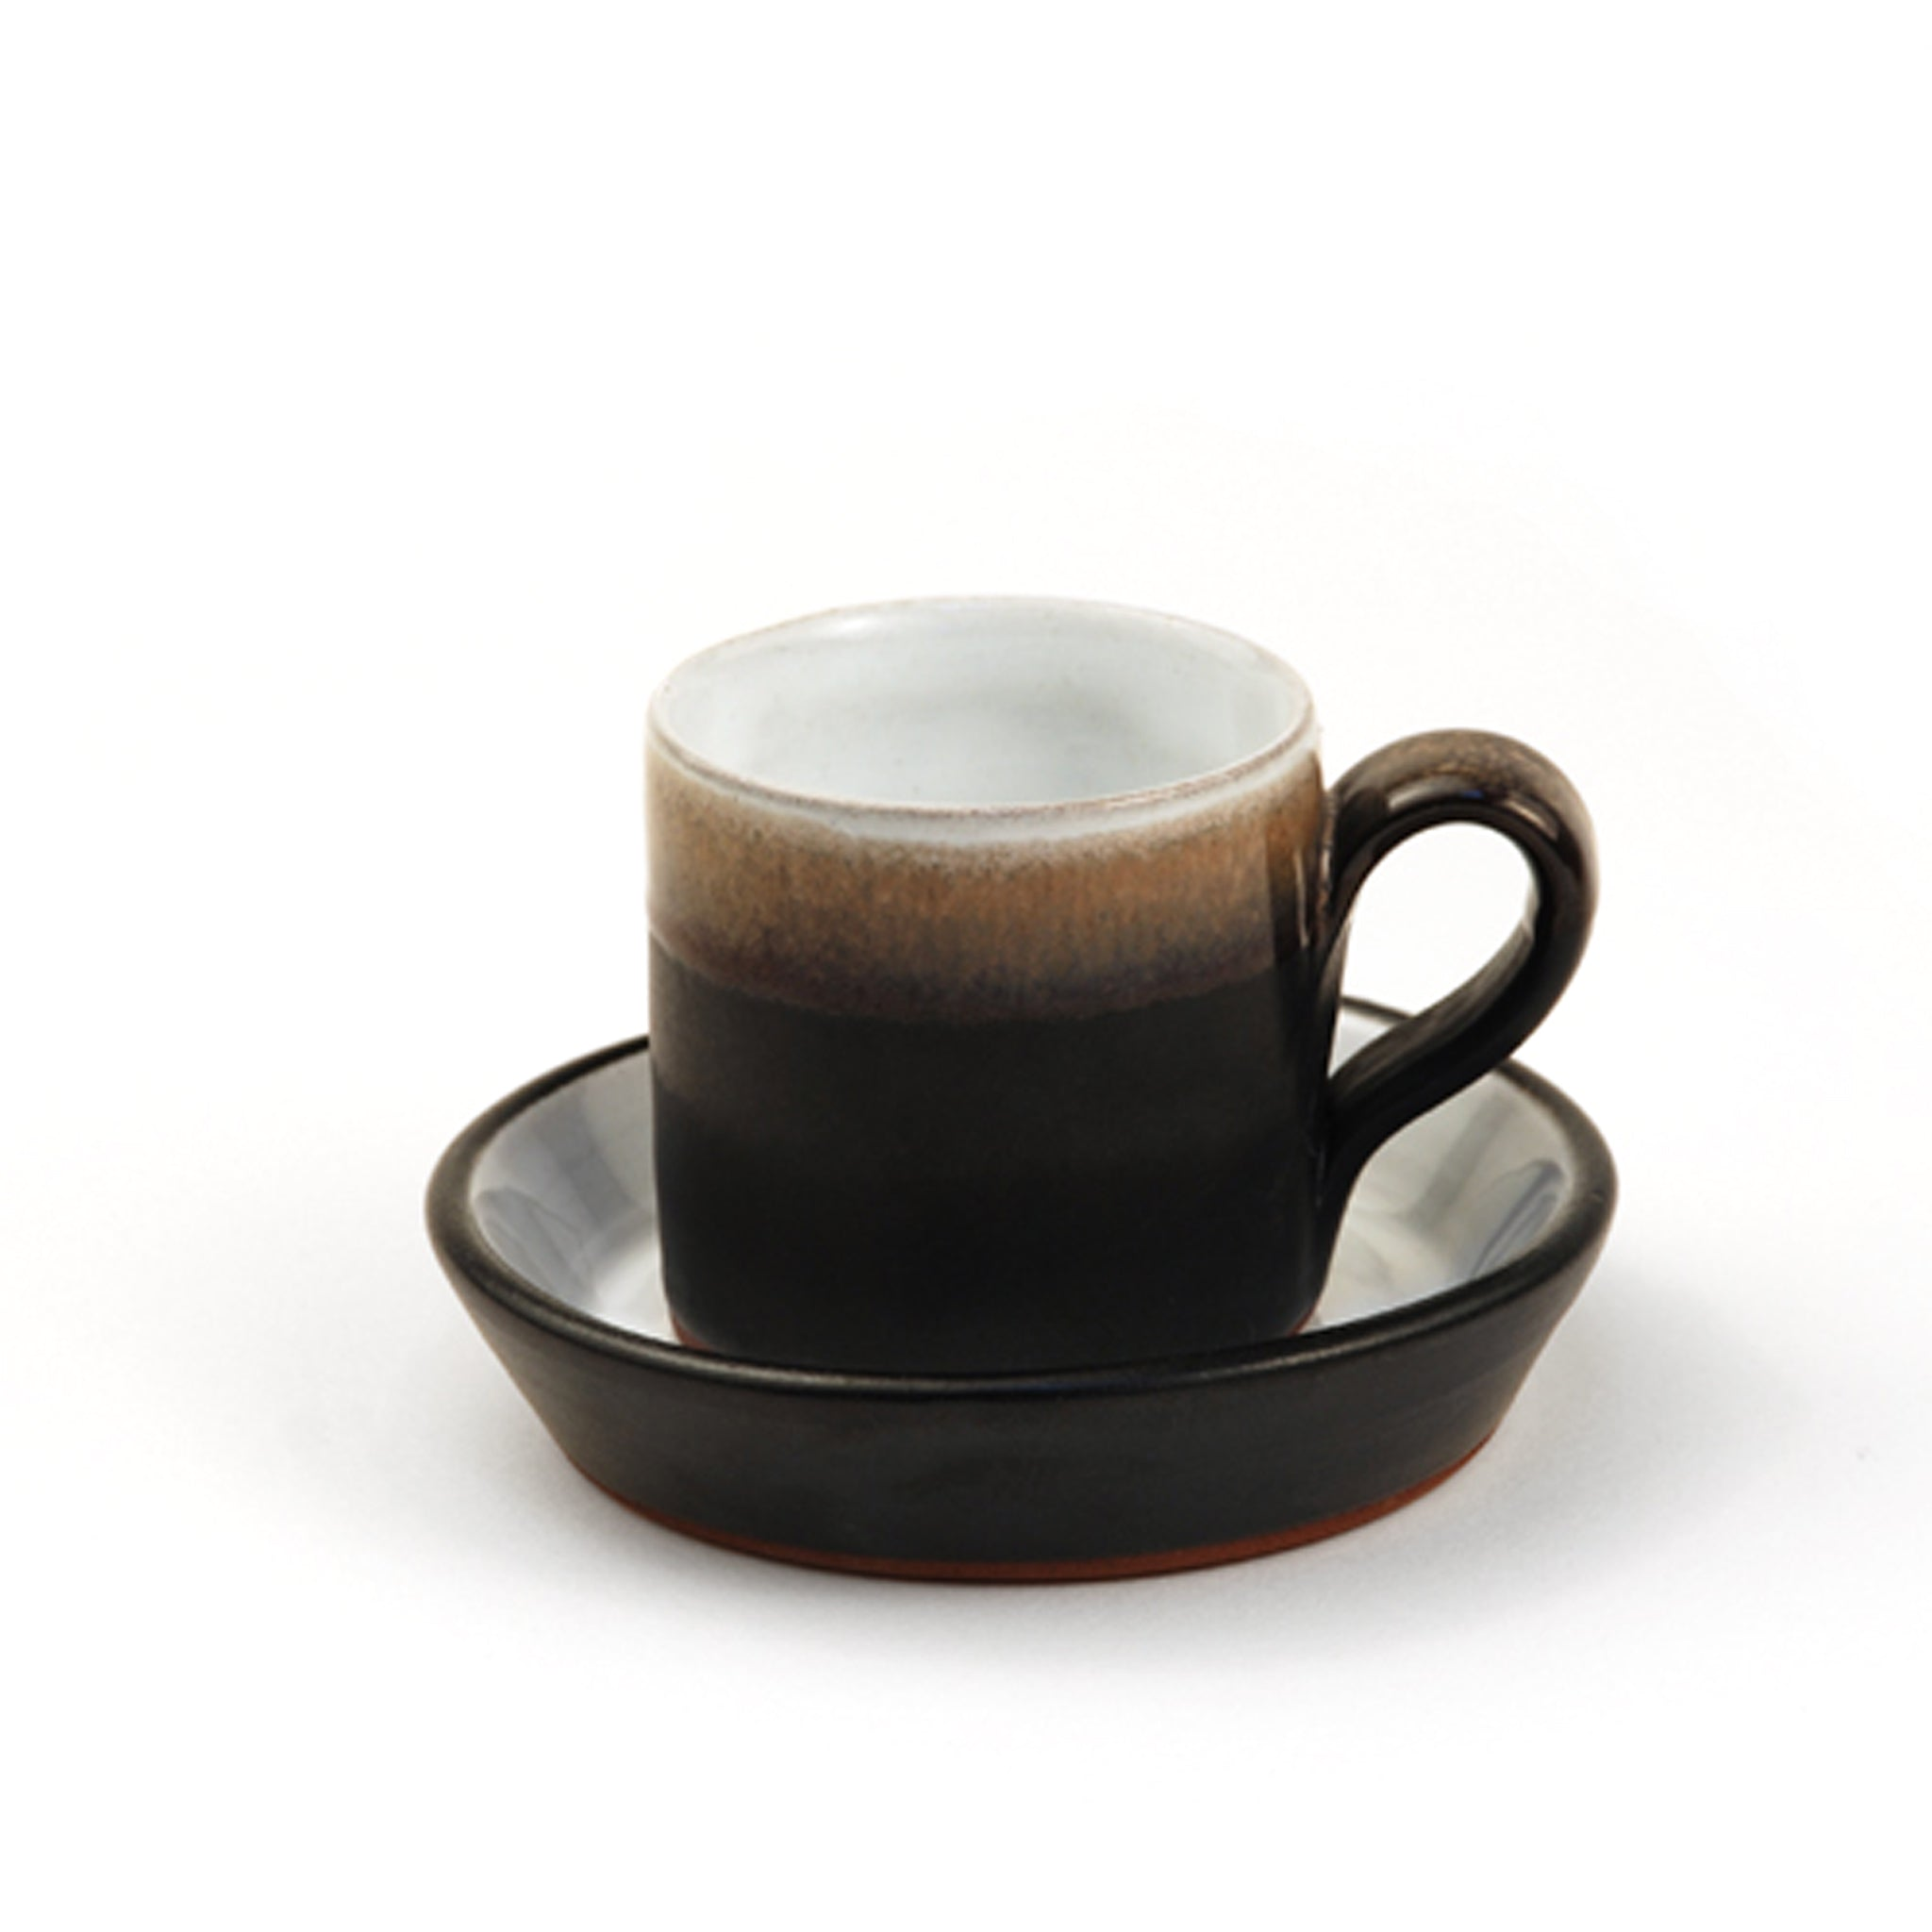 Shanagarry Coffee Saucer